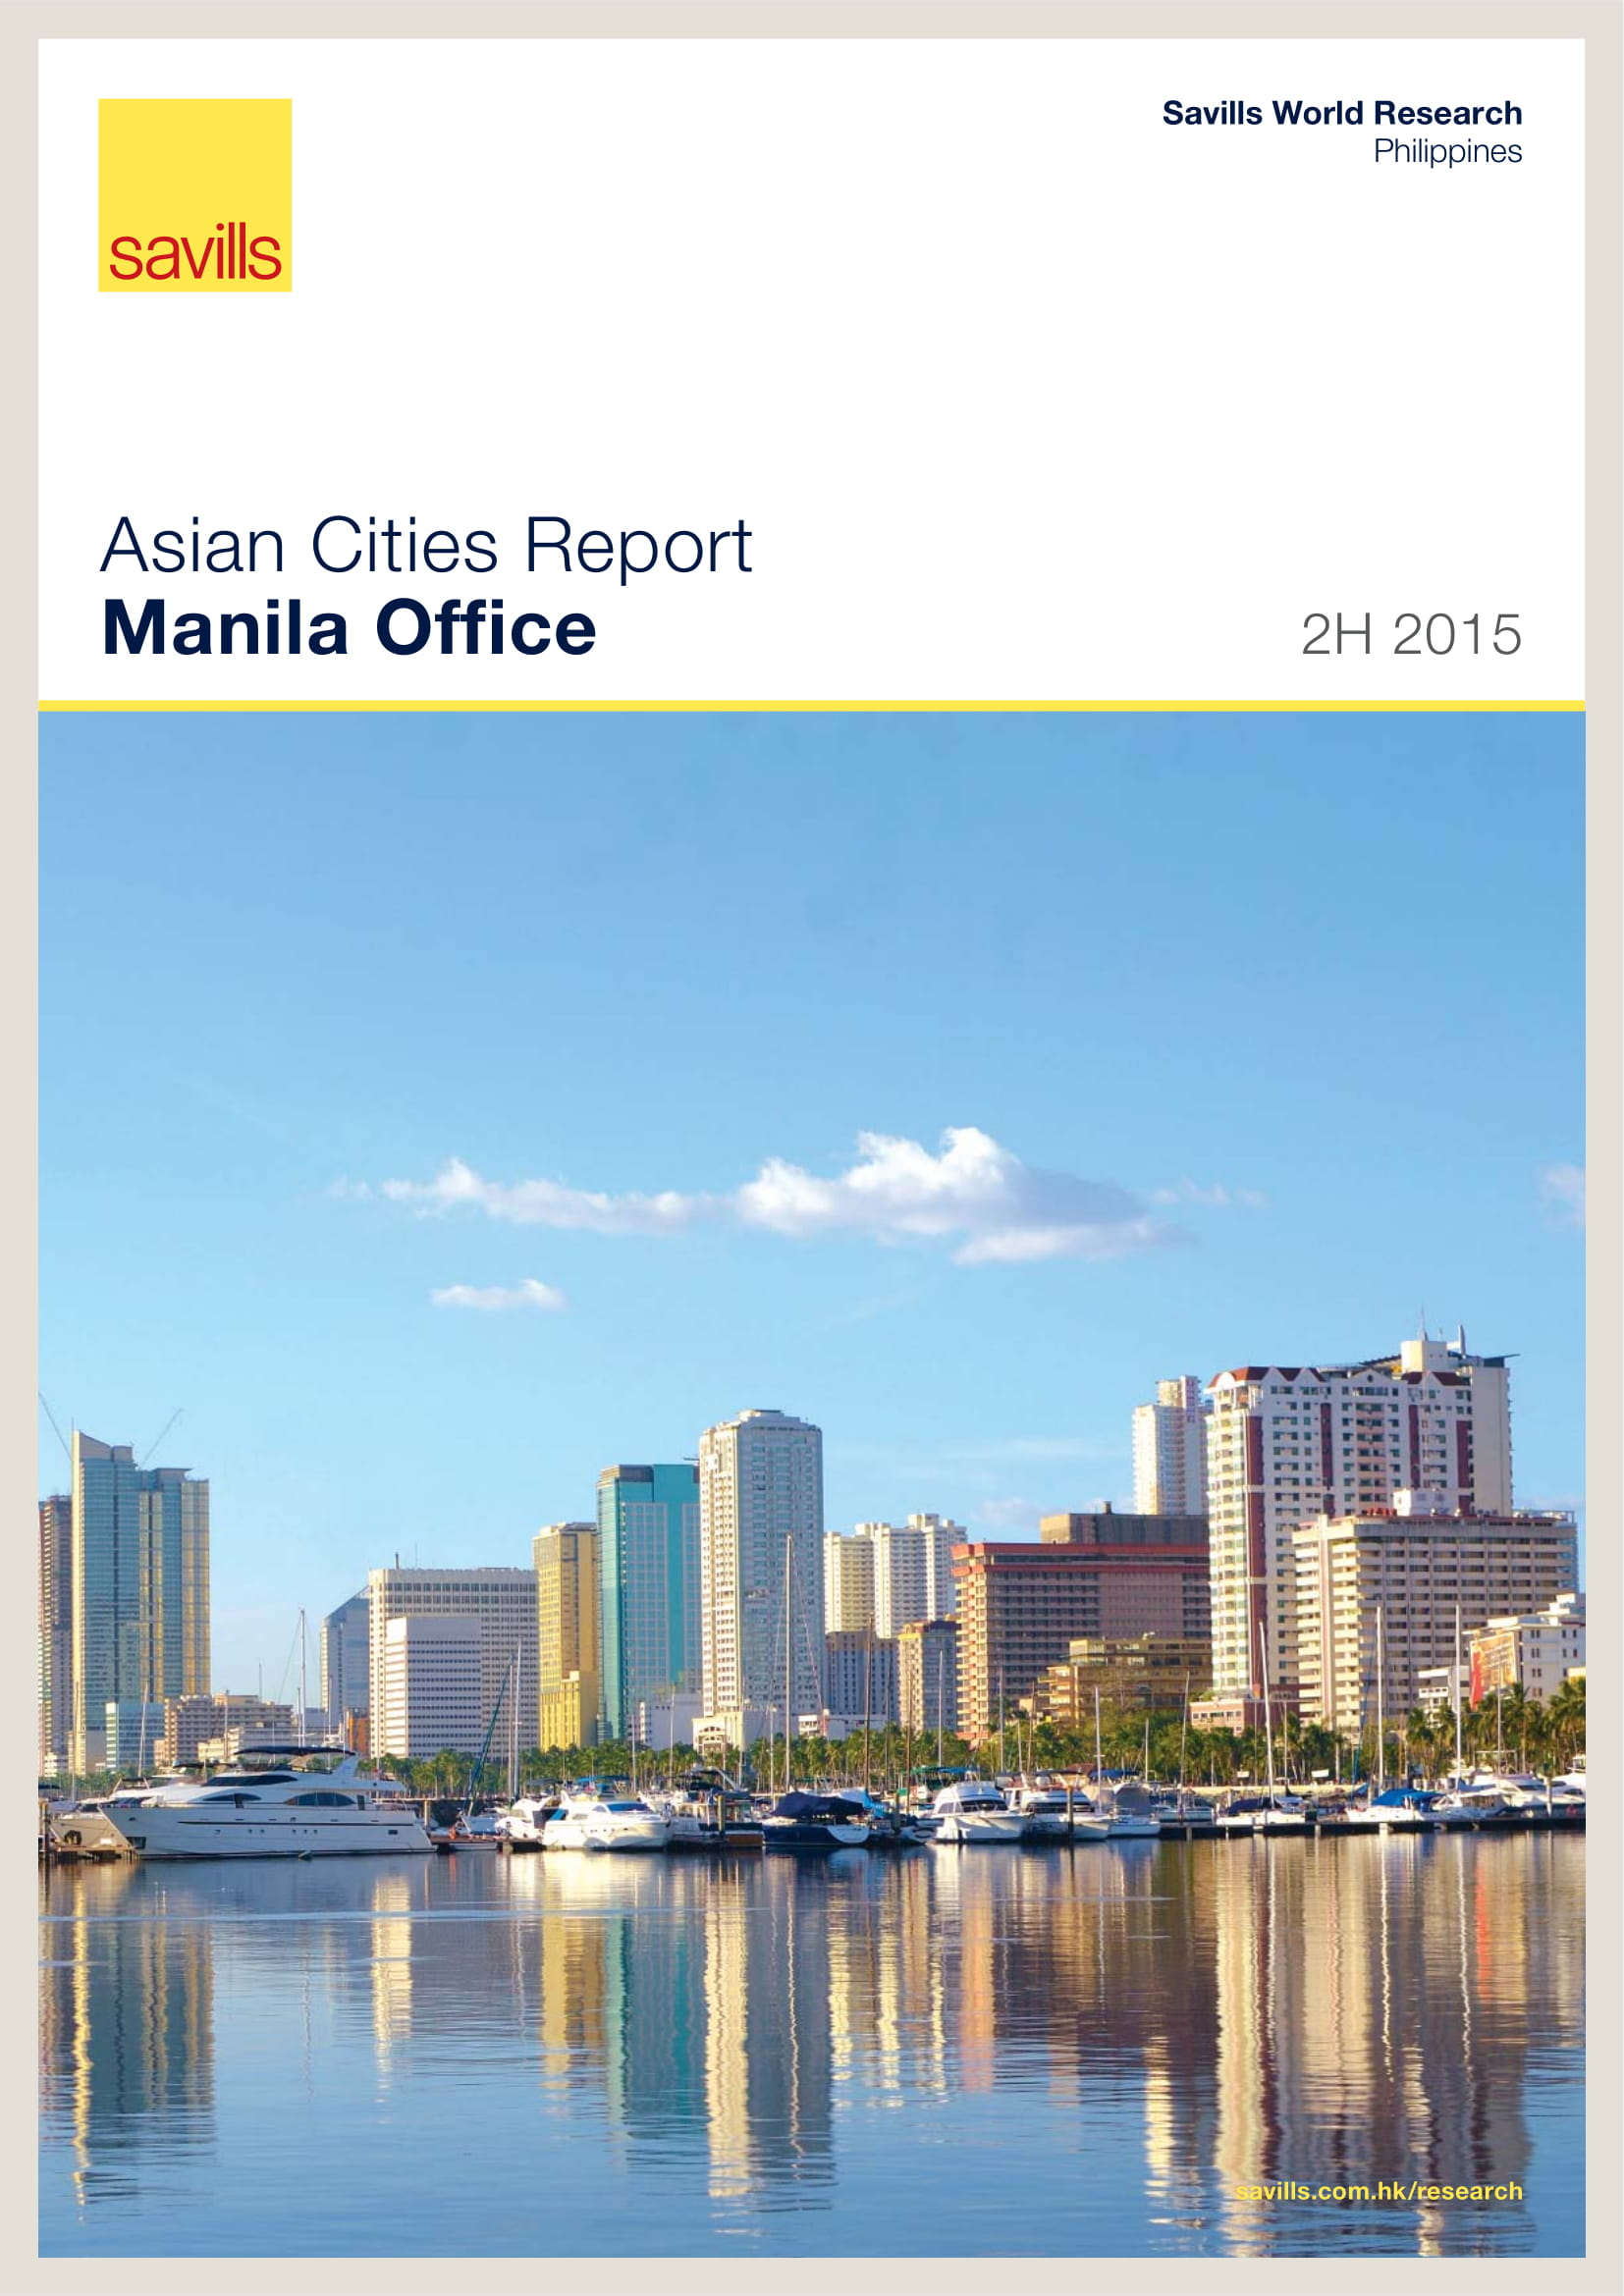 Asian Cities Report Manila Office 2H 2015